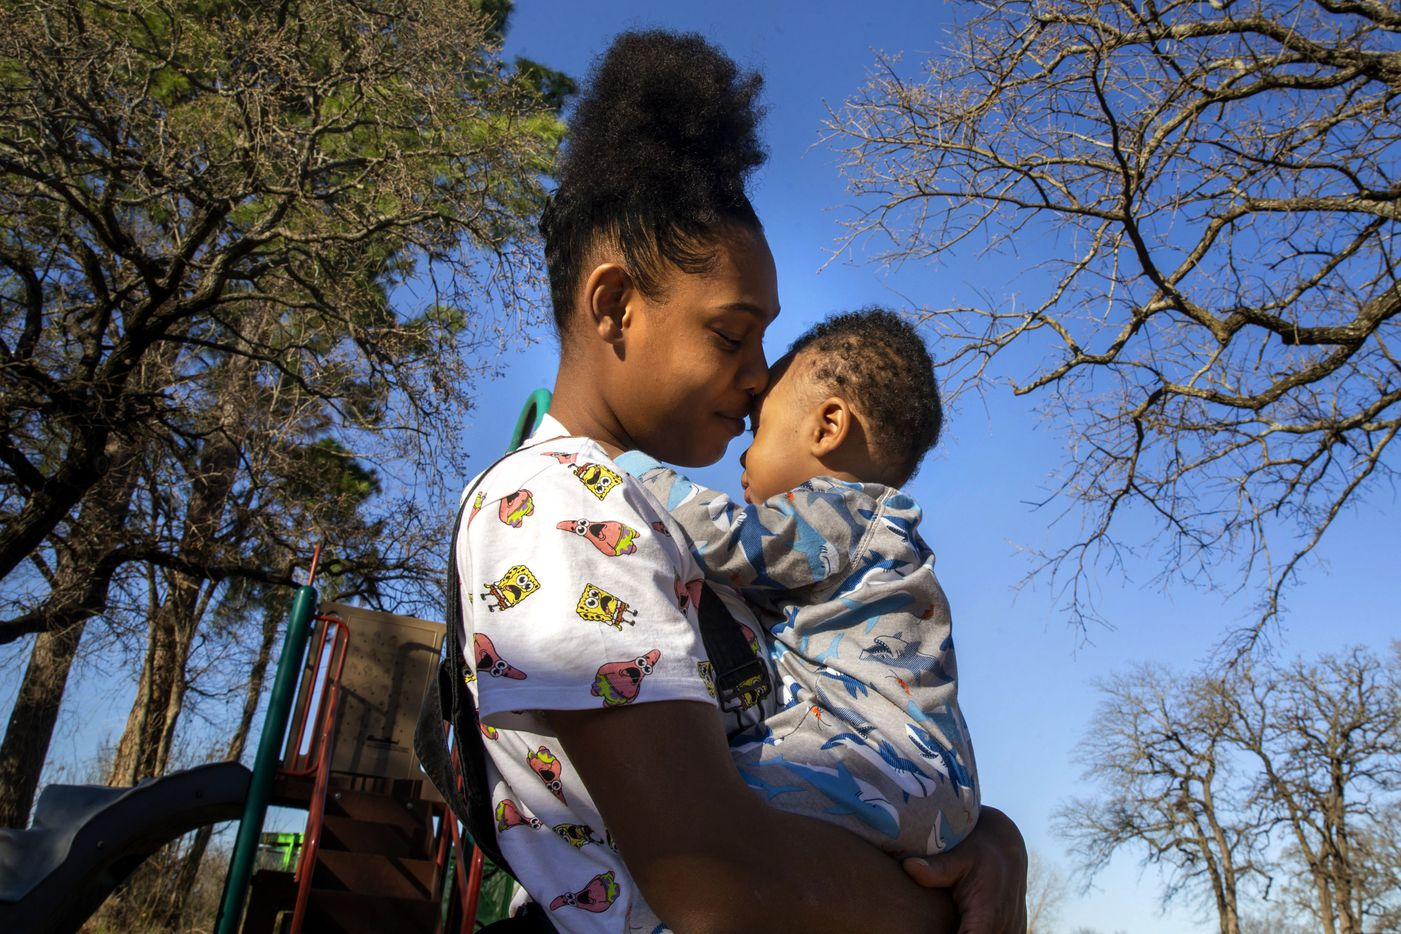 Adrianna Smith, from Pleasant Grove, embraces her 19-month-old child, LaRey, while visiting Joppa Park with local friends in the Joppa neighborhood of South Dallas on Thursday, March 5, 2020.